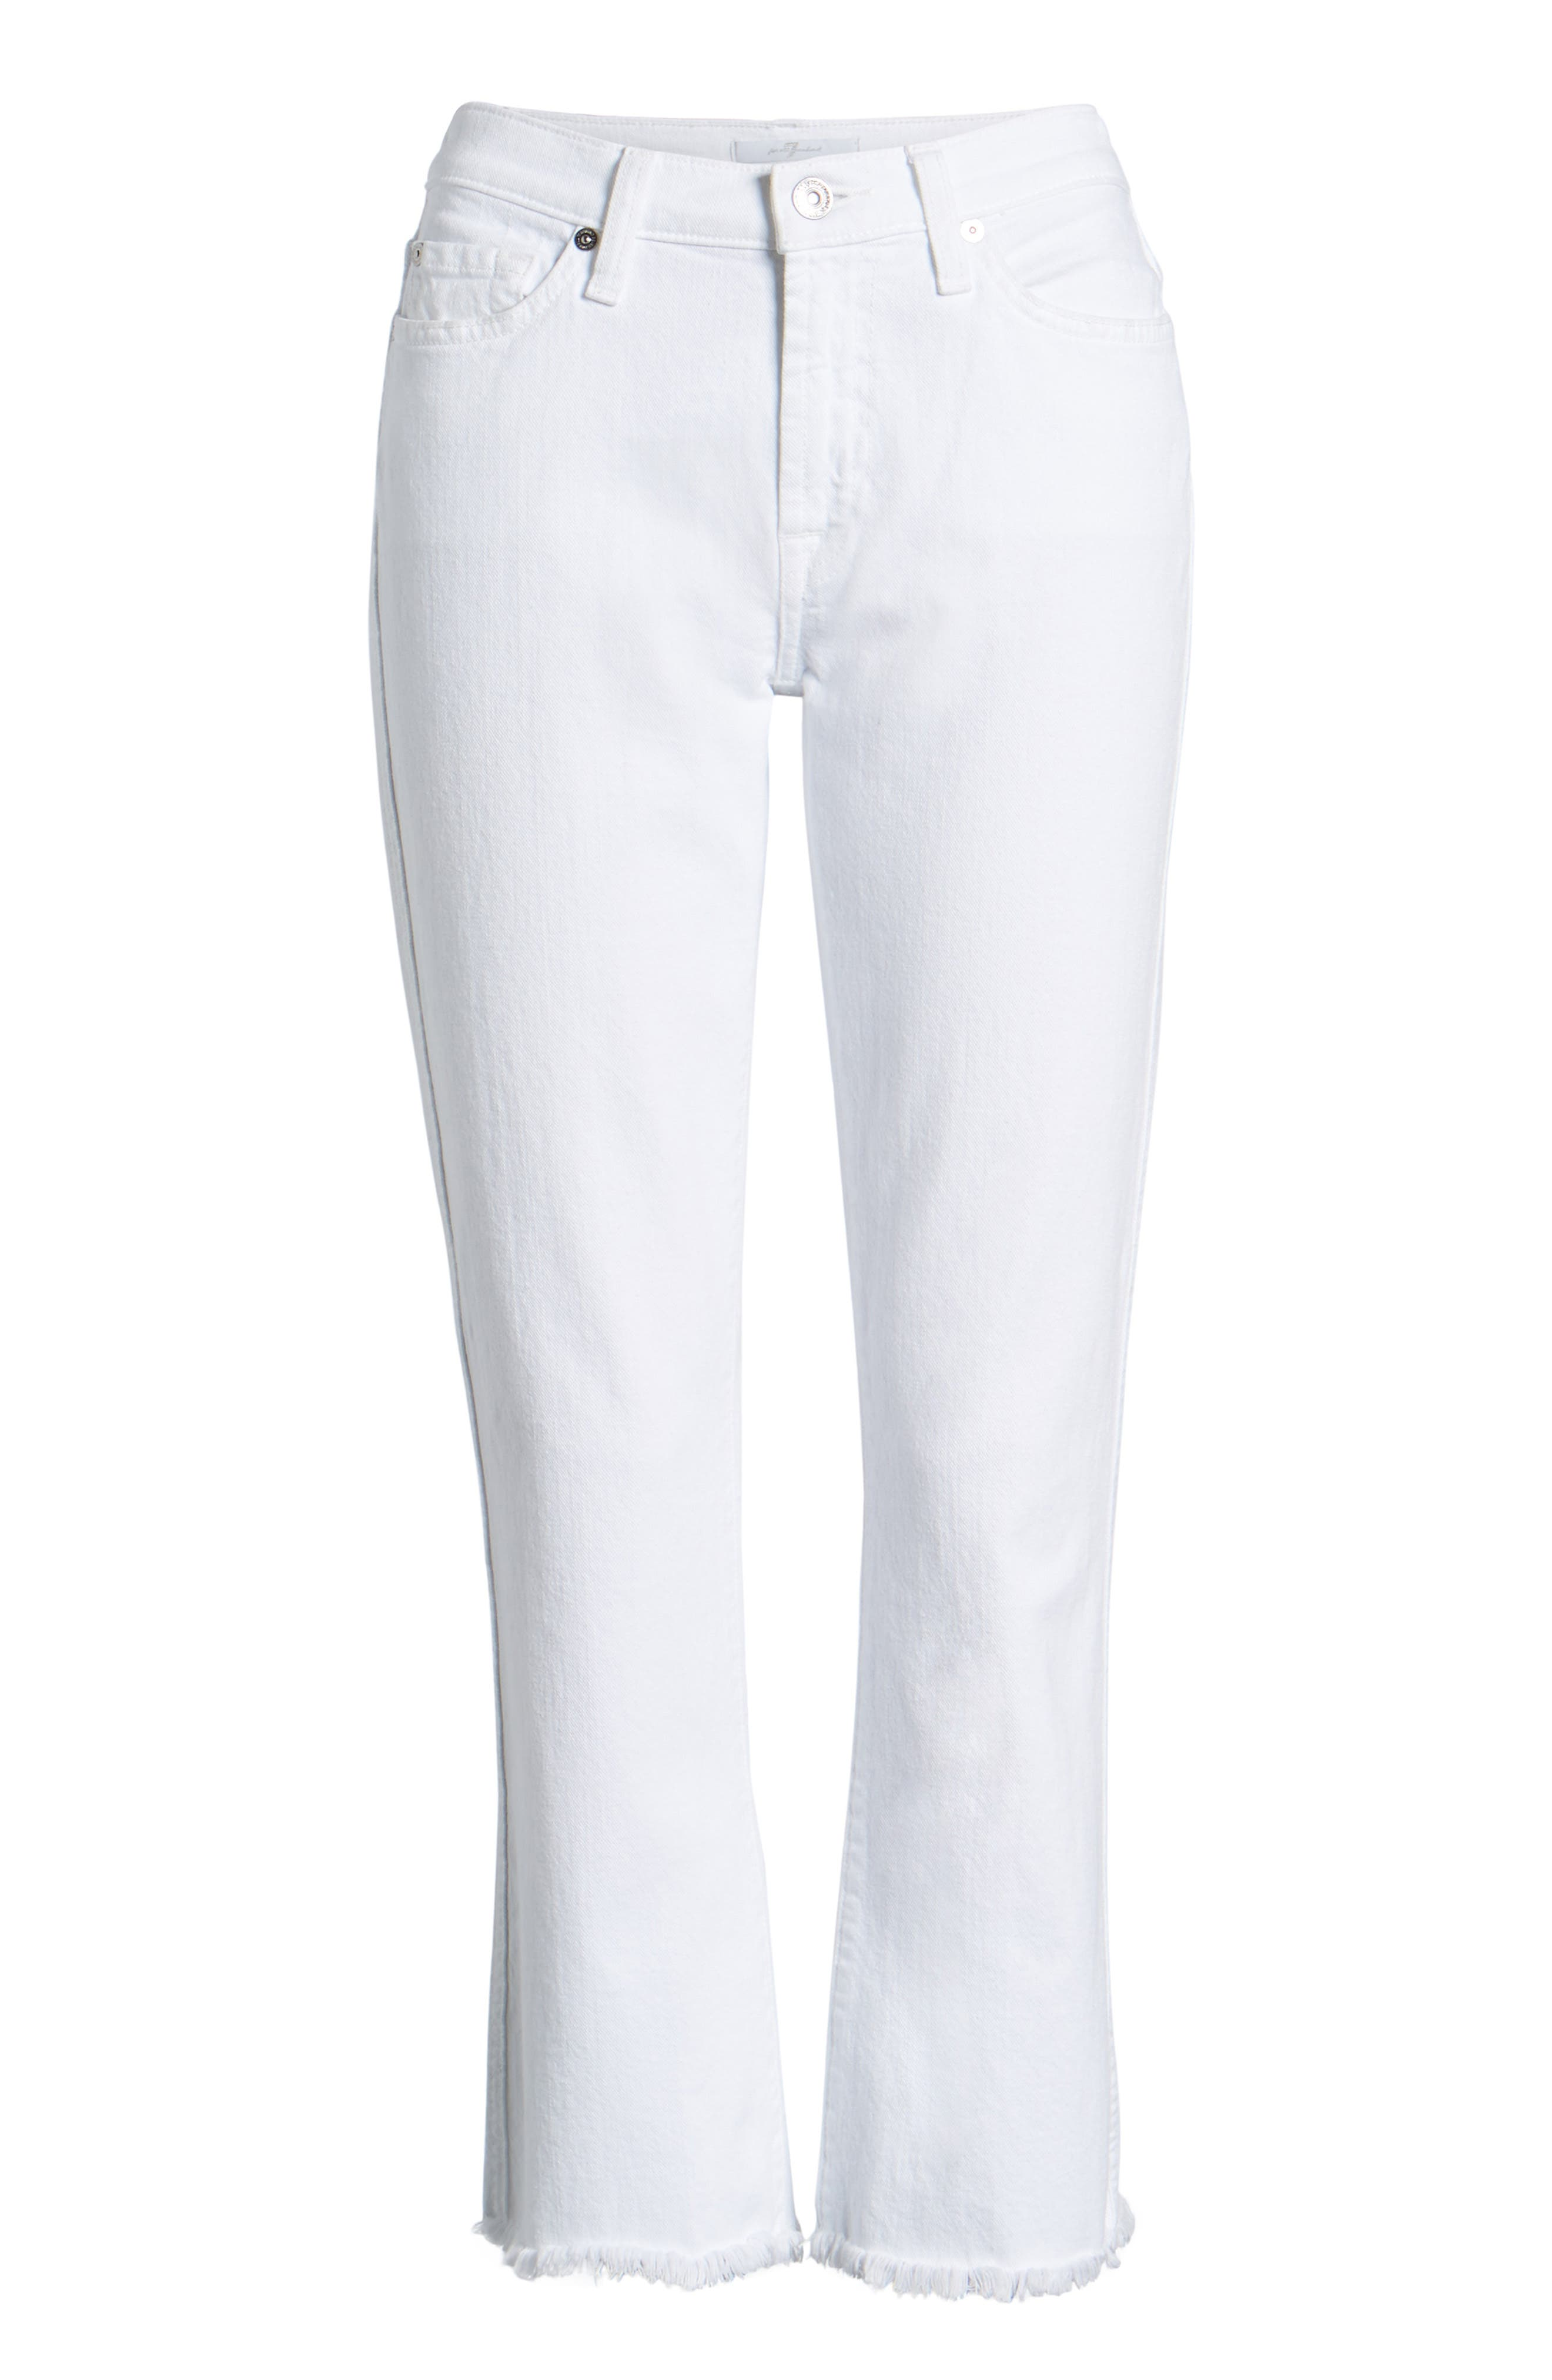 Frayed Crop Bootcut Jeans,                             Alternate thumbnail 7, color,                             White Fashion